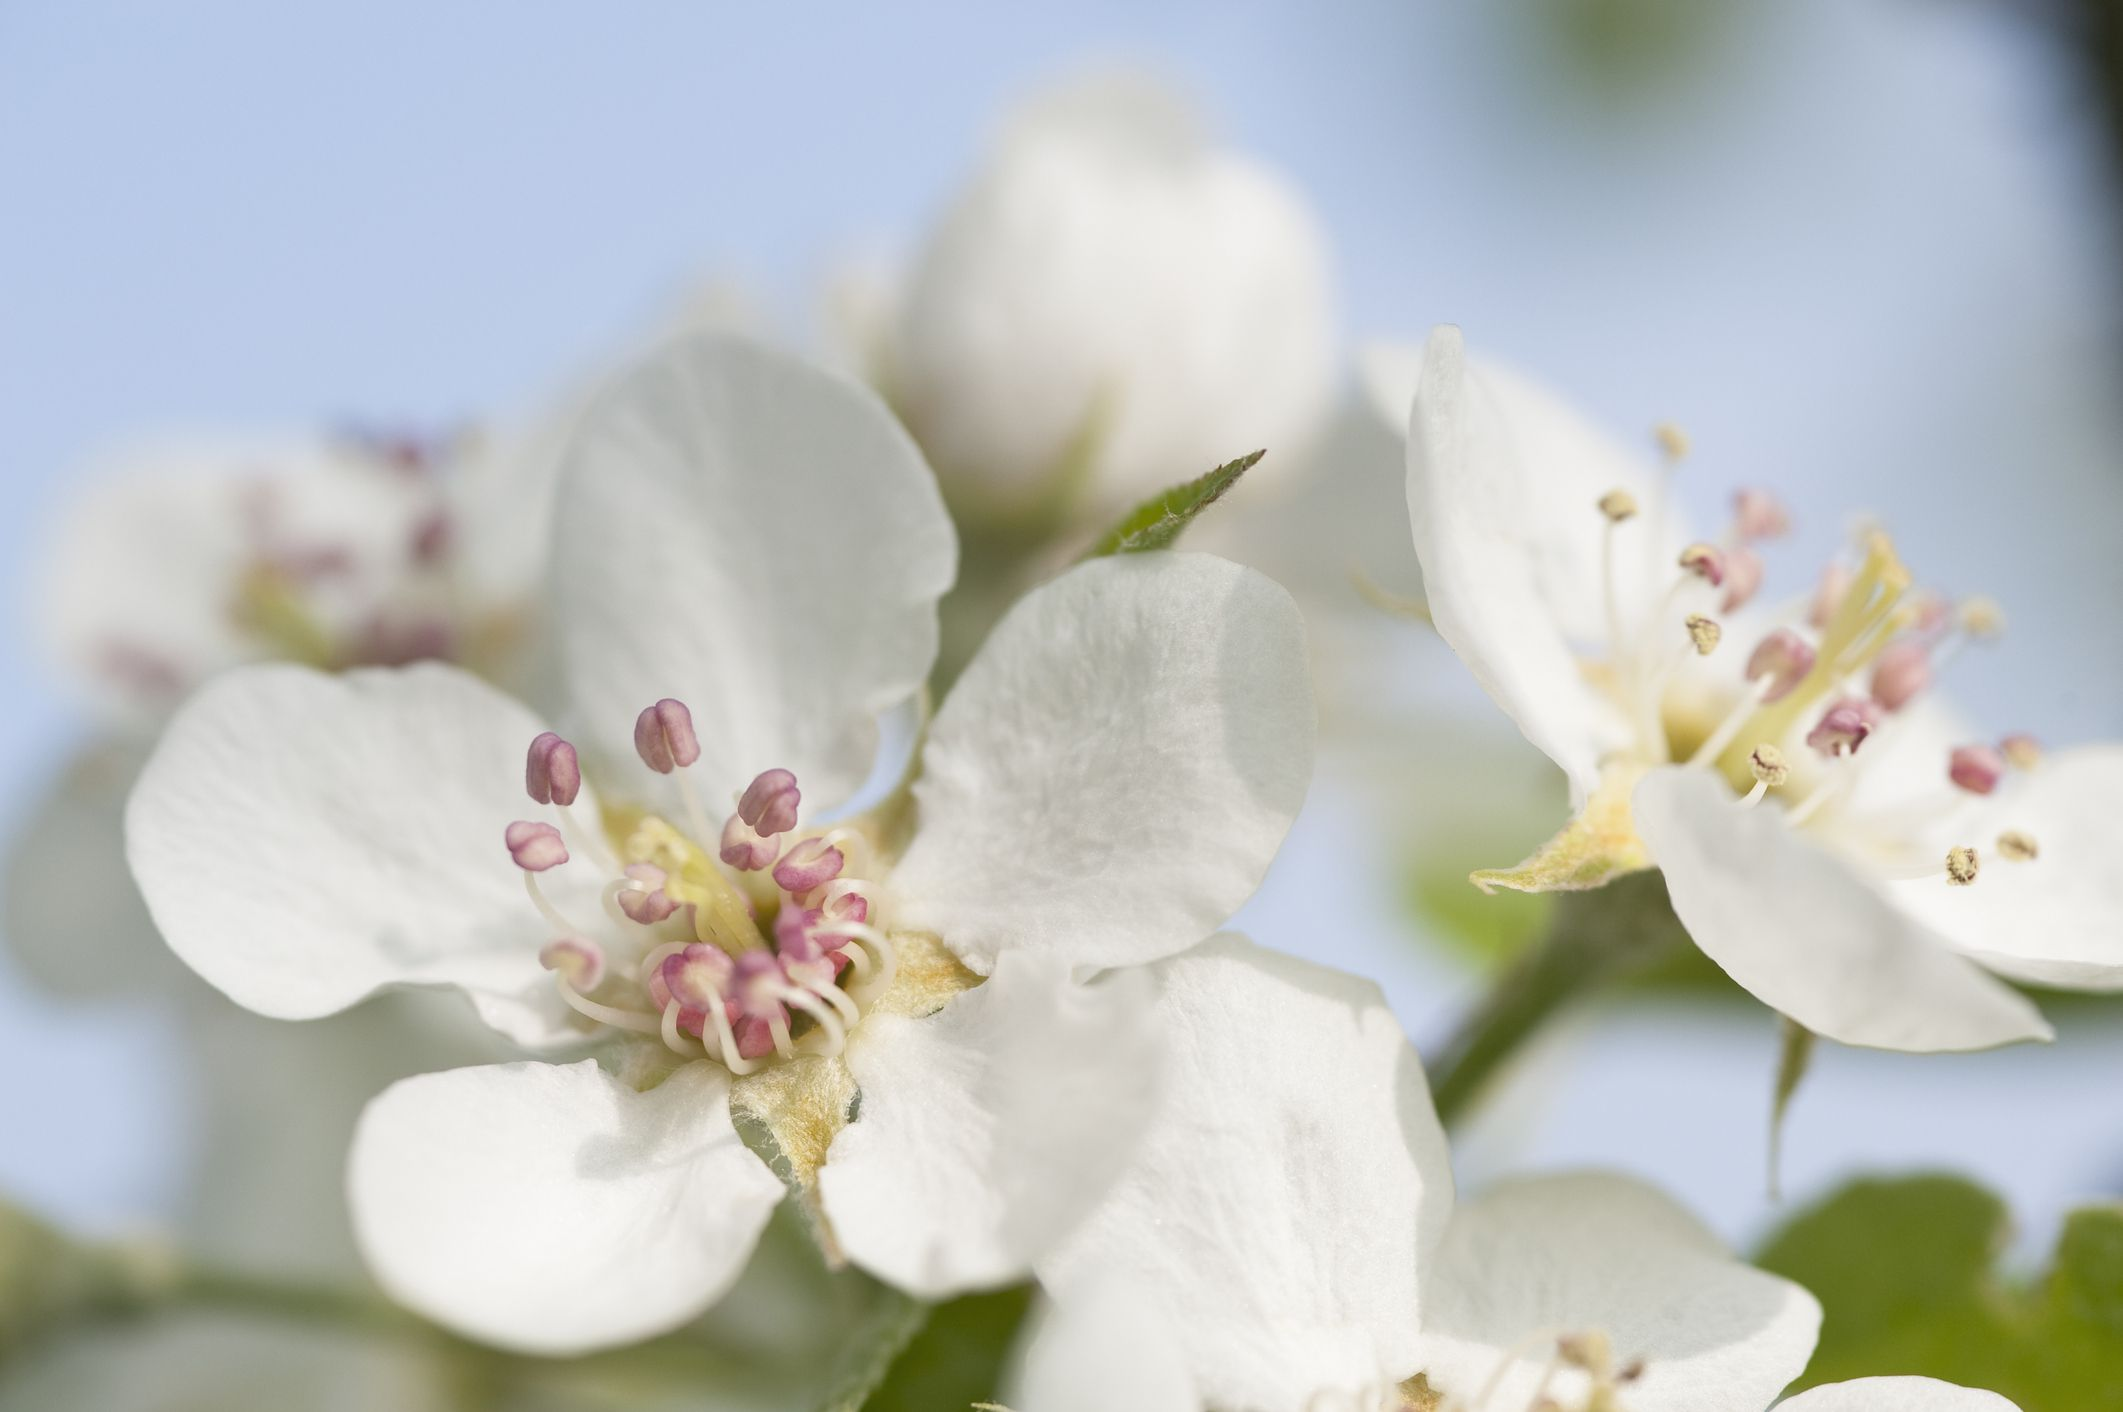 White apple blossoms.